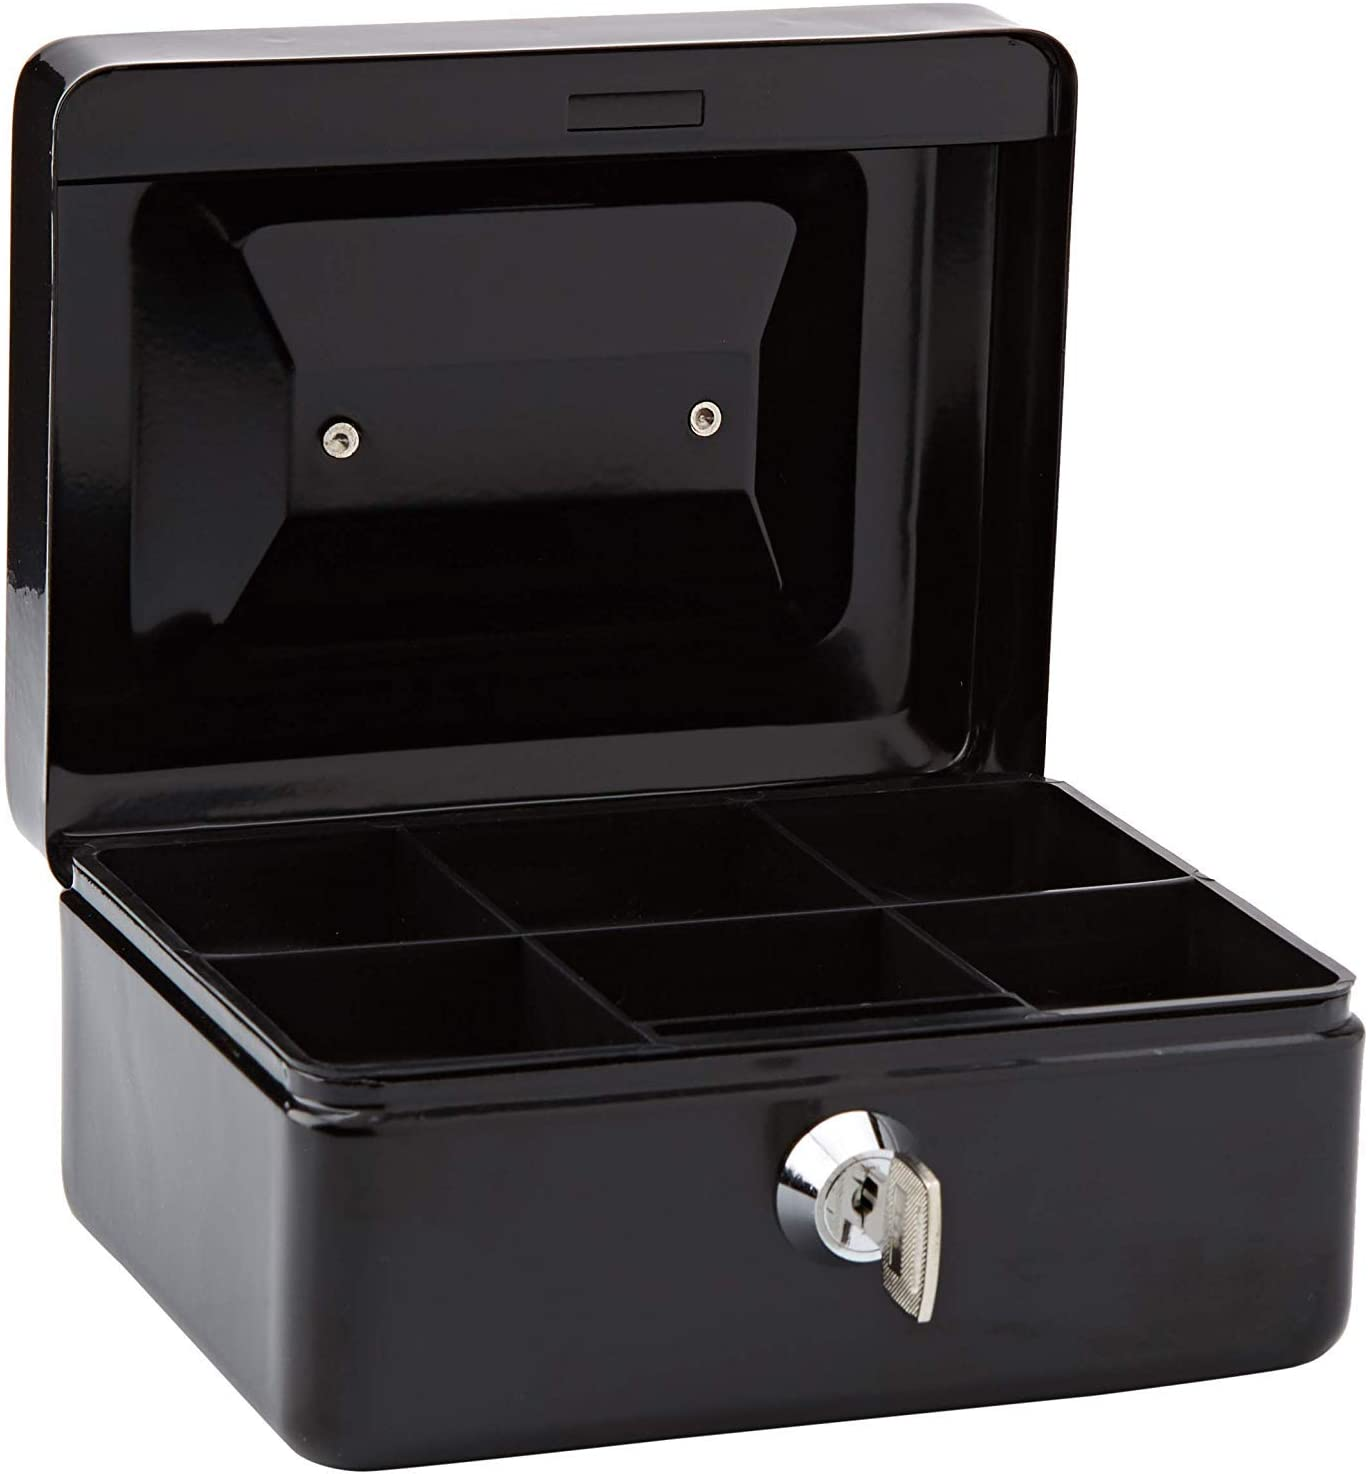 Lockable Coin And Note Security Box With 2 Keys Black, 4 Perfect For Carrying And Storing Money Easy To Use T/&B Heavy Duty Metal Cash Tin